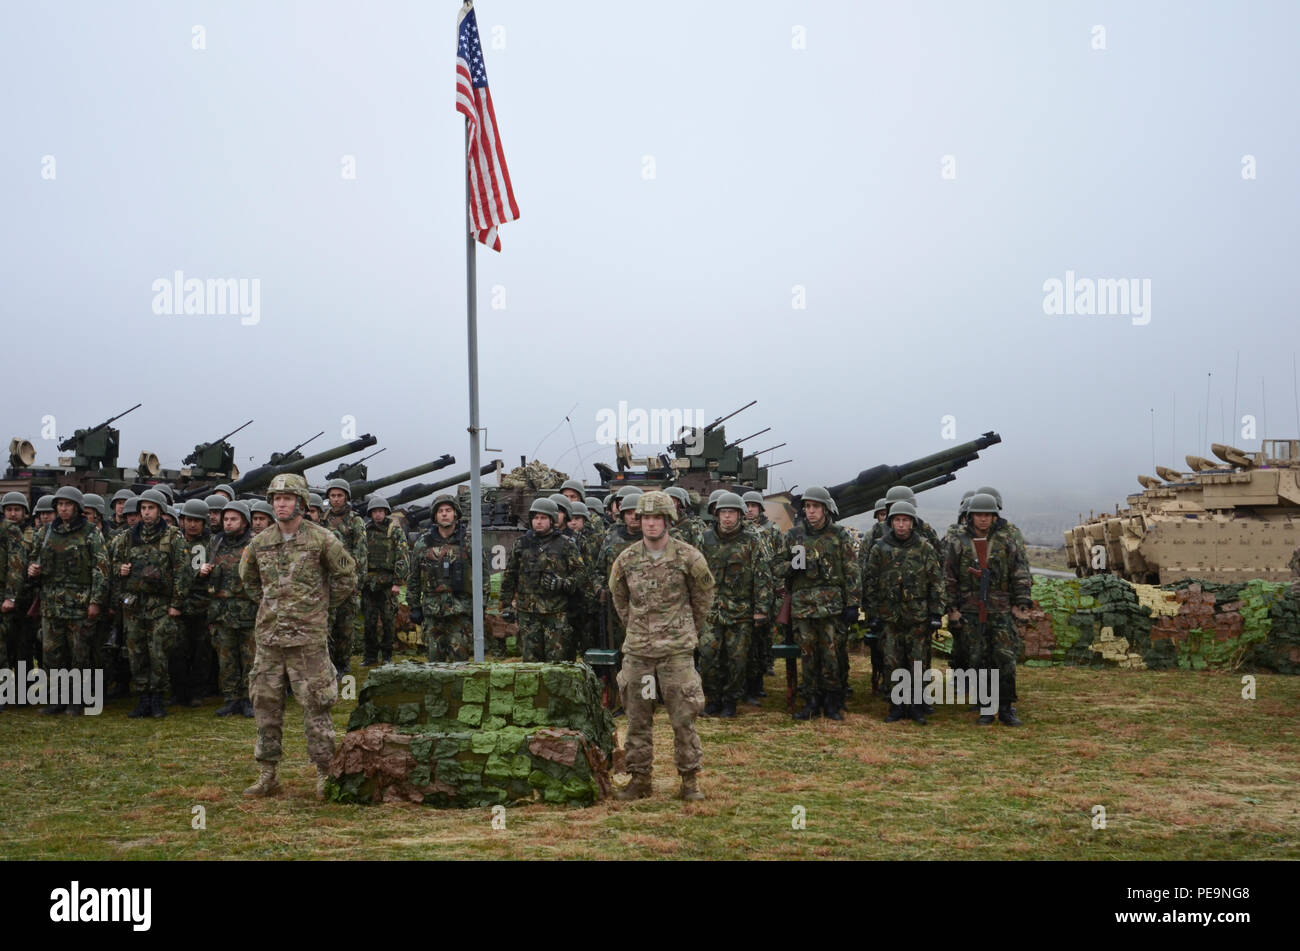 U.S. Soldiers of 5th Squadron, 7th Cavalry Regiment, 3rd Infantry Division, stationed at Fort Stewart, Ga., stand at parade rest at the base of the flag pole as Bulgarian soldiers stand in formation behind them during the closing ceremony of Exercise Peace Sentinel at Novo Selo Training Center, Bulgaria, Nov. 24, 2015. (U.S. Army photo by Staff Sgt. Steven M. Colvin/Released) - Stock Image